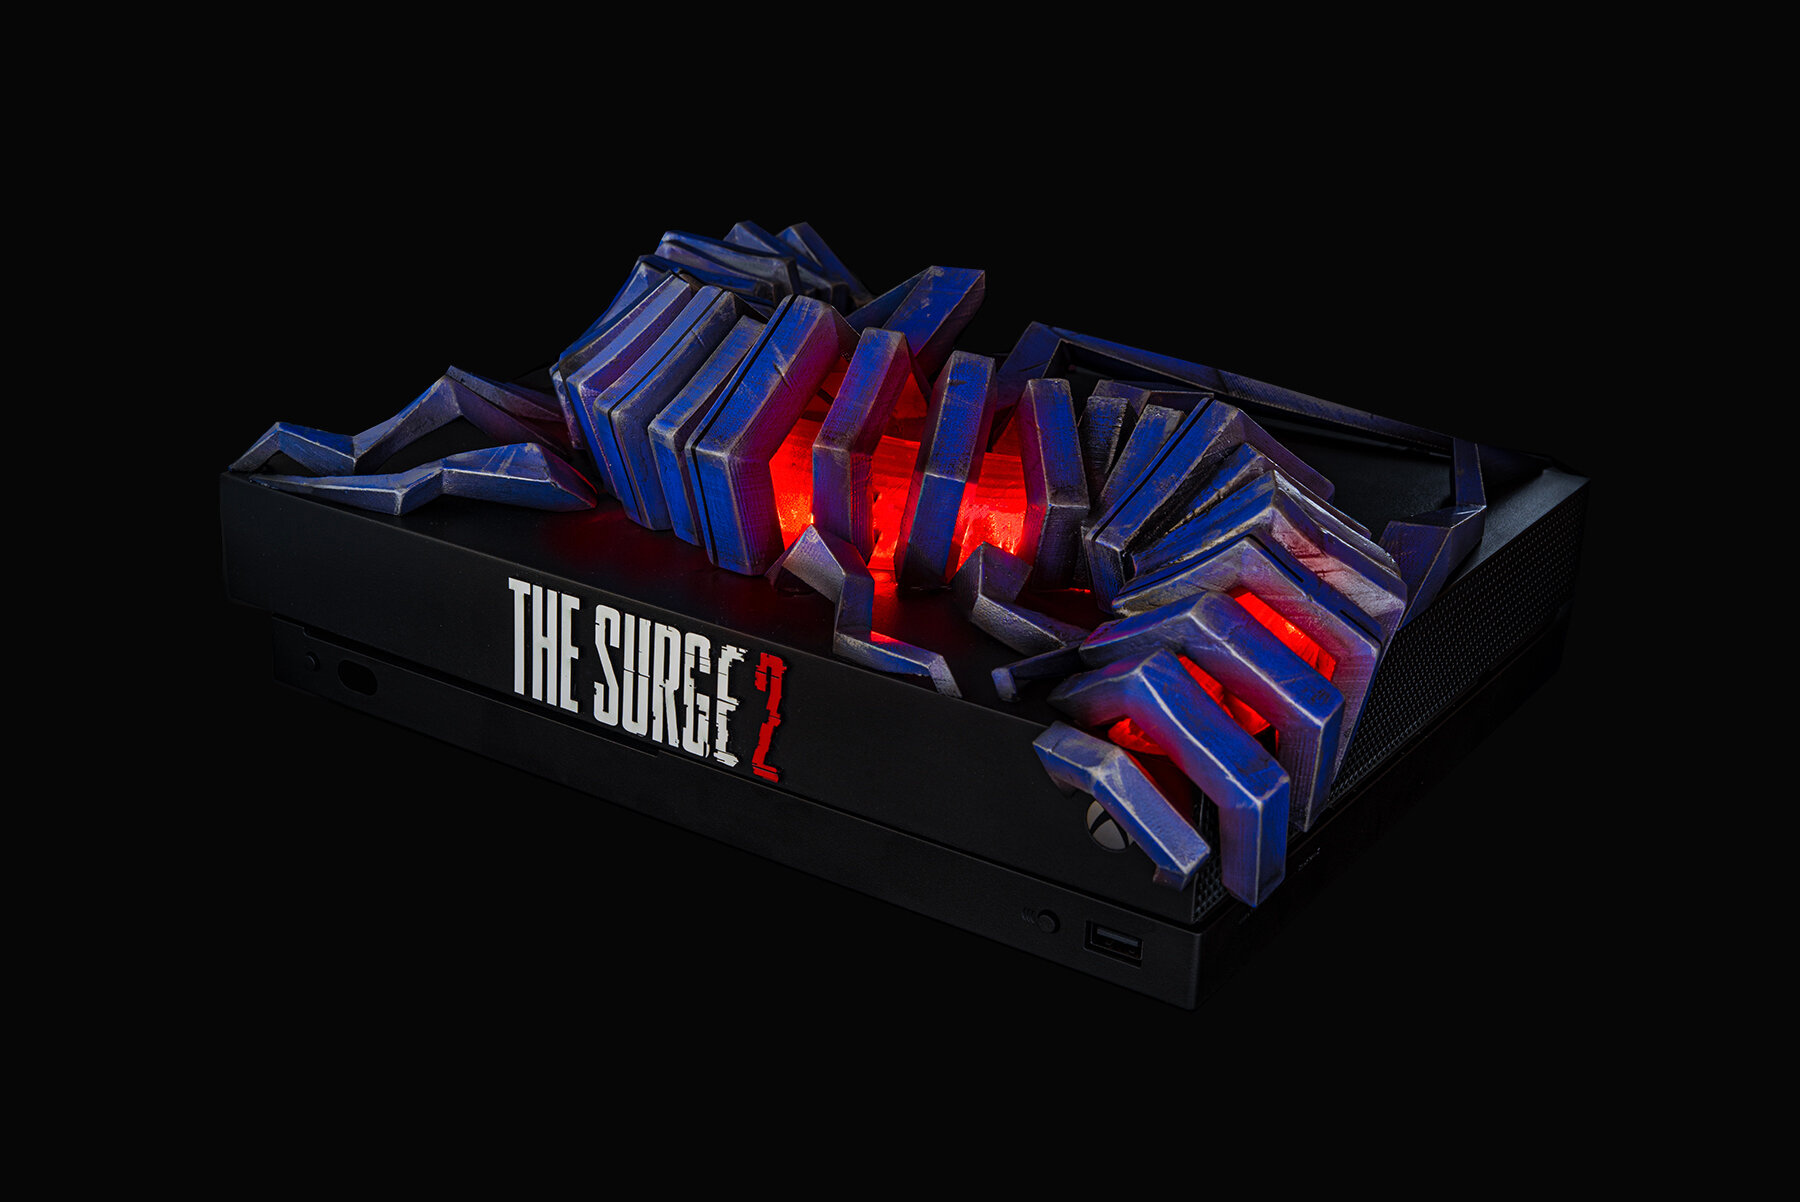 THE SURGE 2 - XBOX ONE X